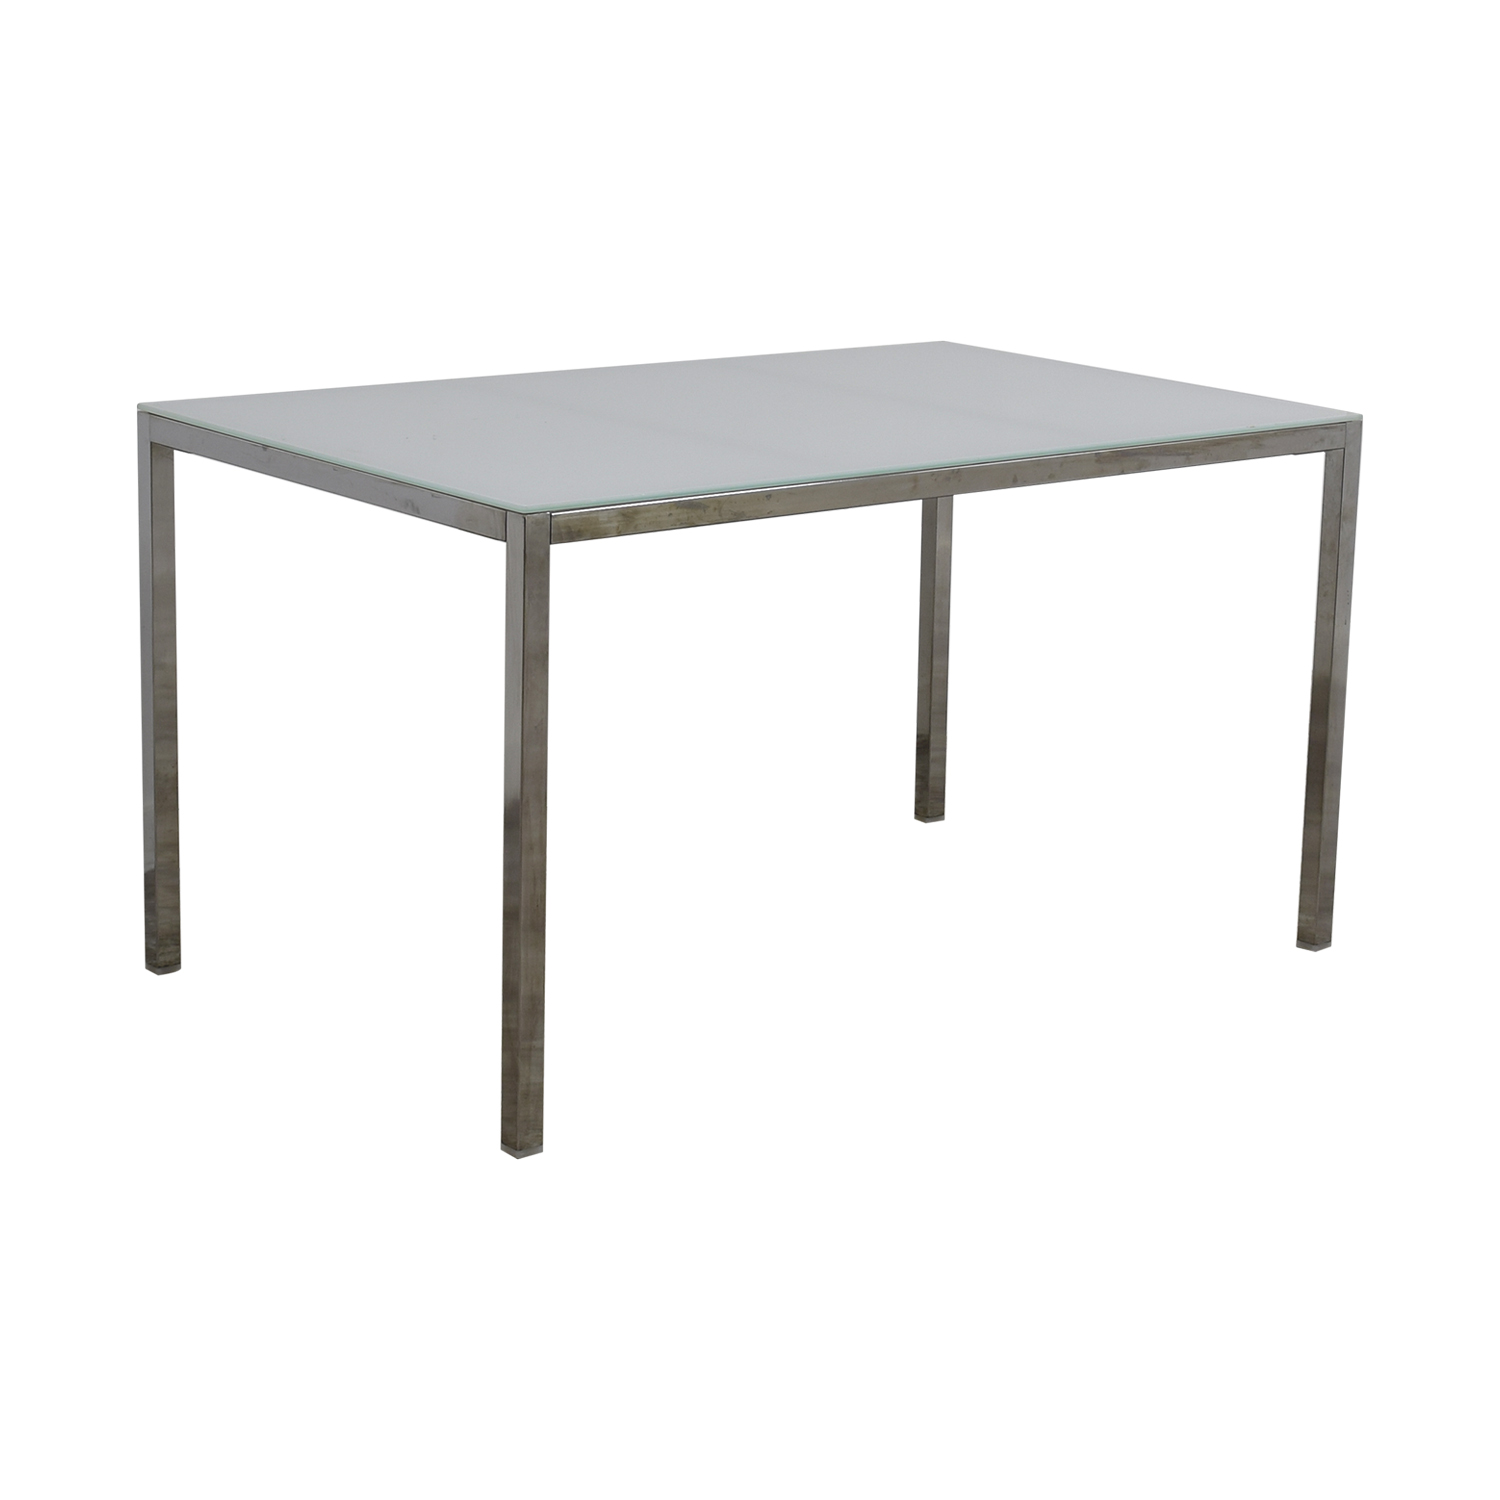 IKEA IKEA White Glass Top Dining Table on sale